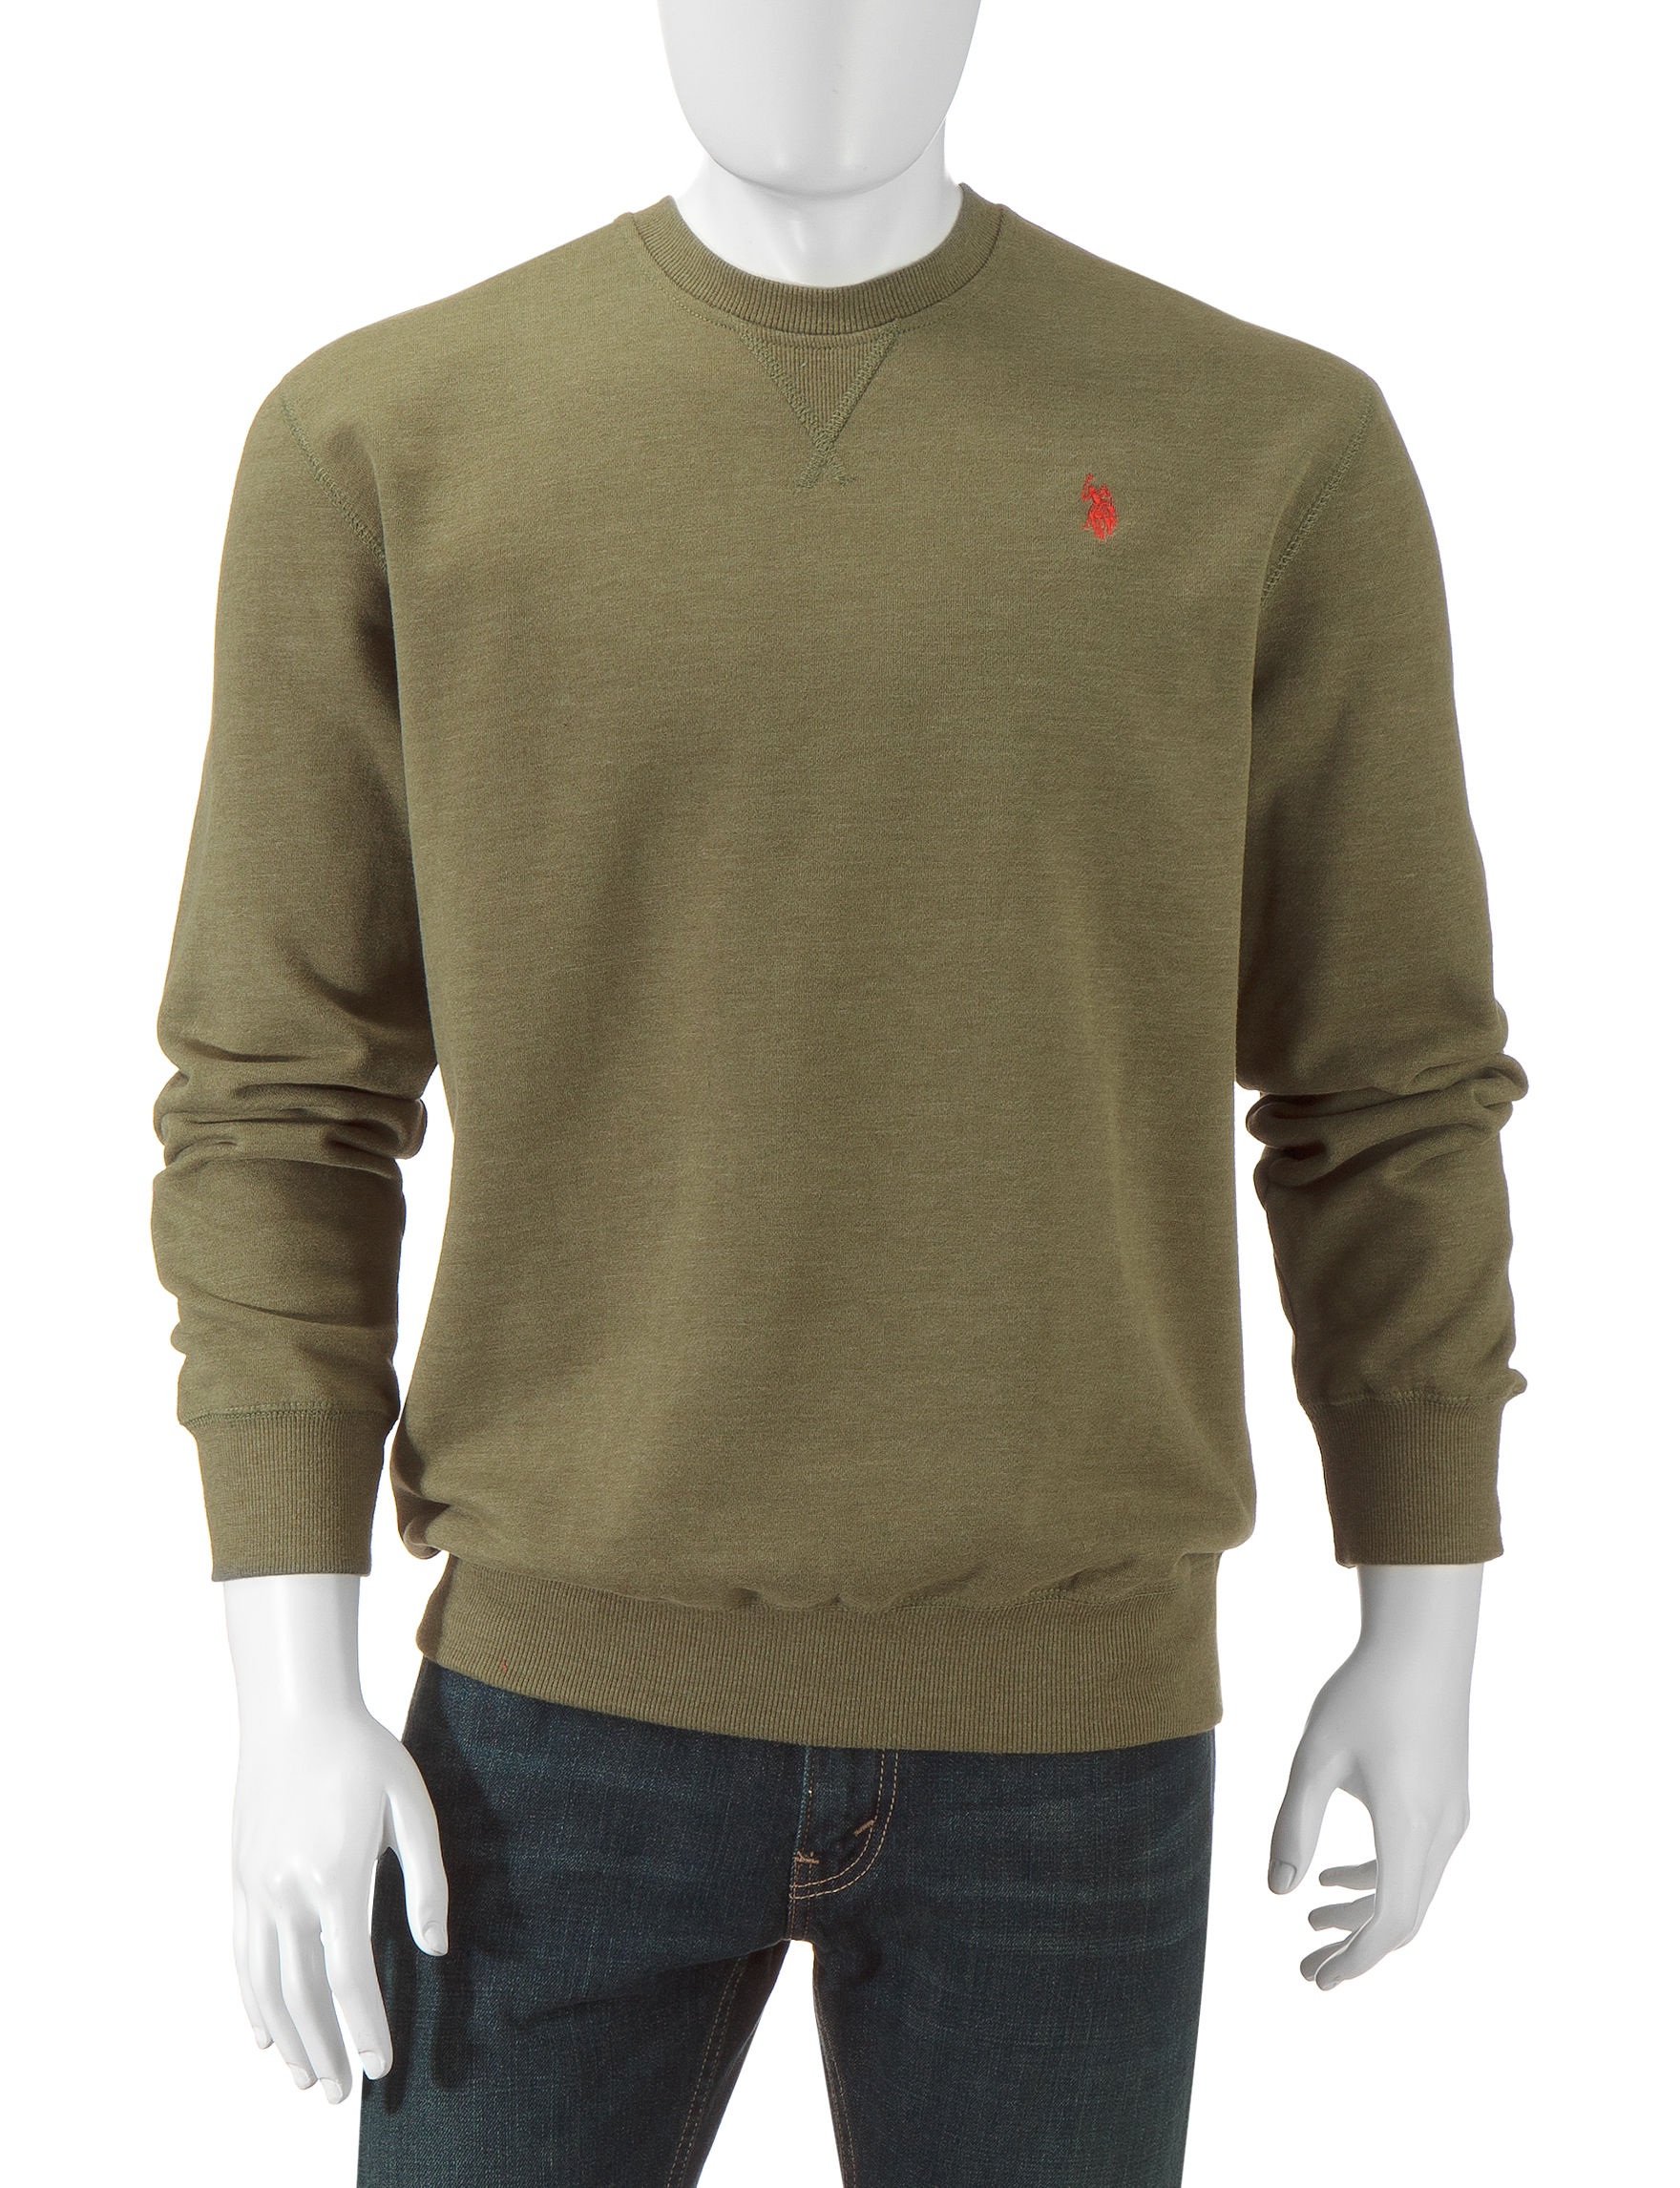 U.S. Polo Assn. Olive Pull-overs